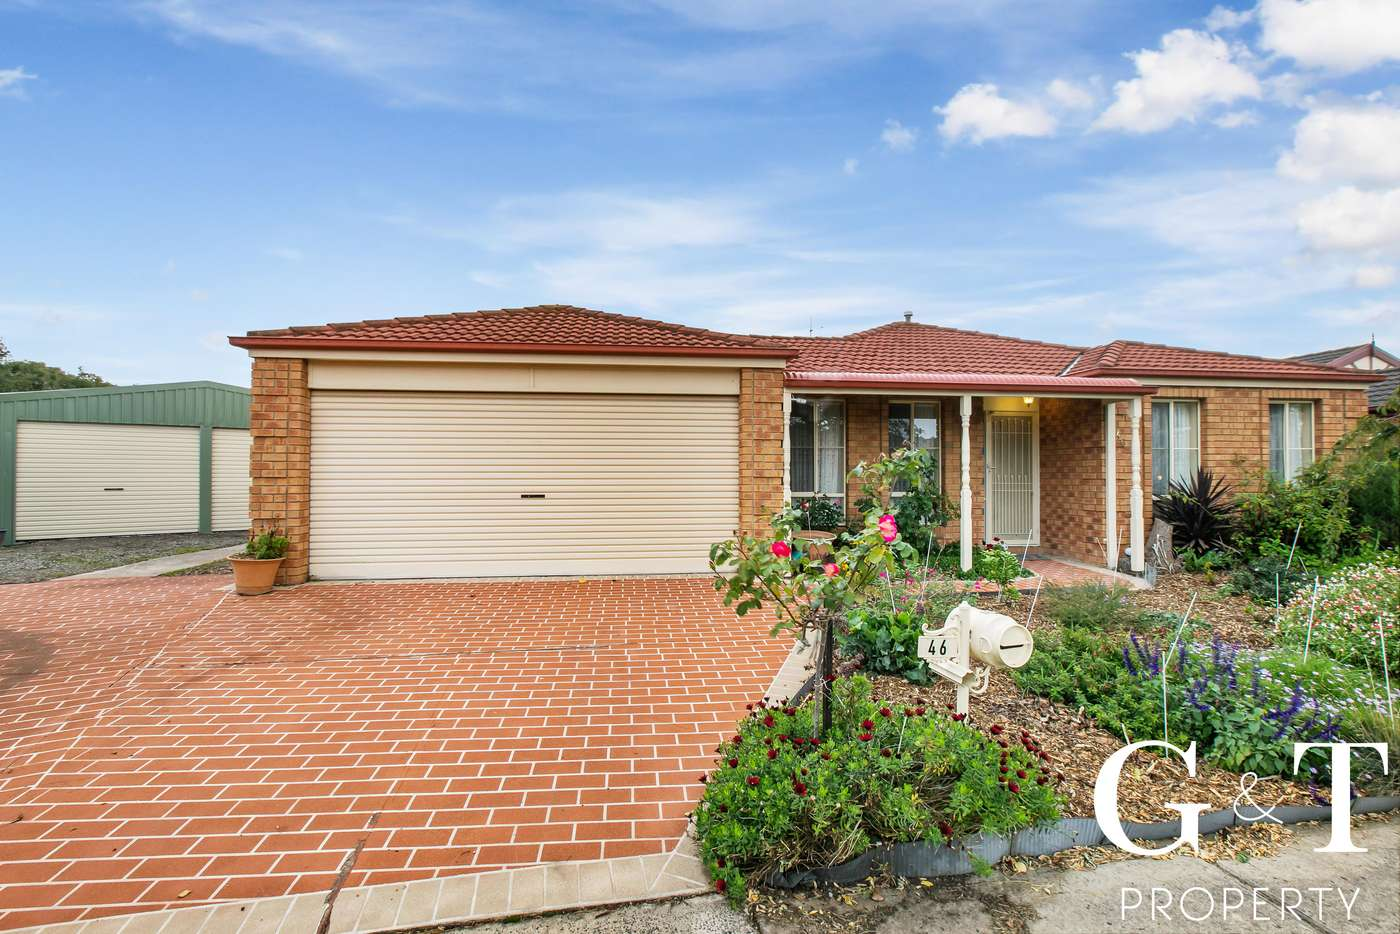 Main view of Homely house listing, 46 Schooner Bay Drive, Frankston VIC 3199